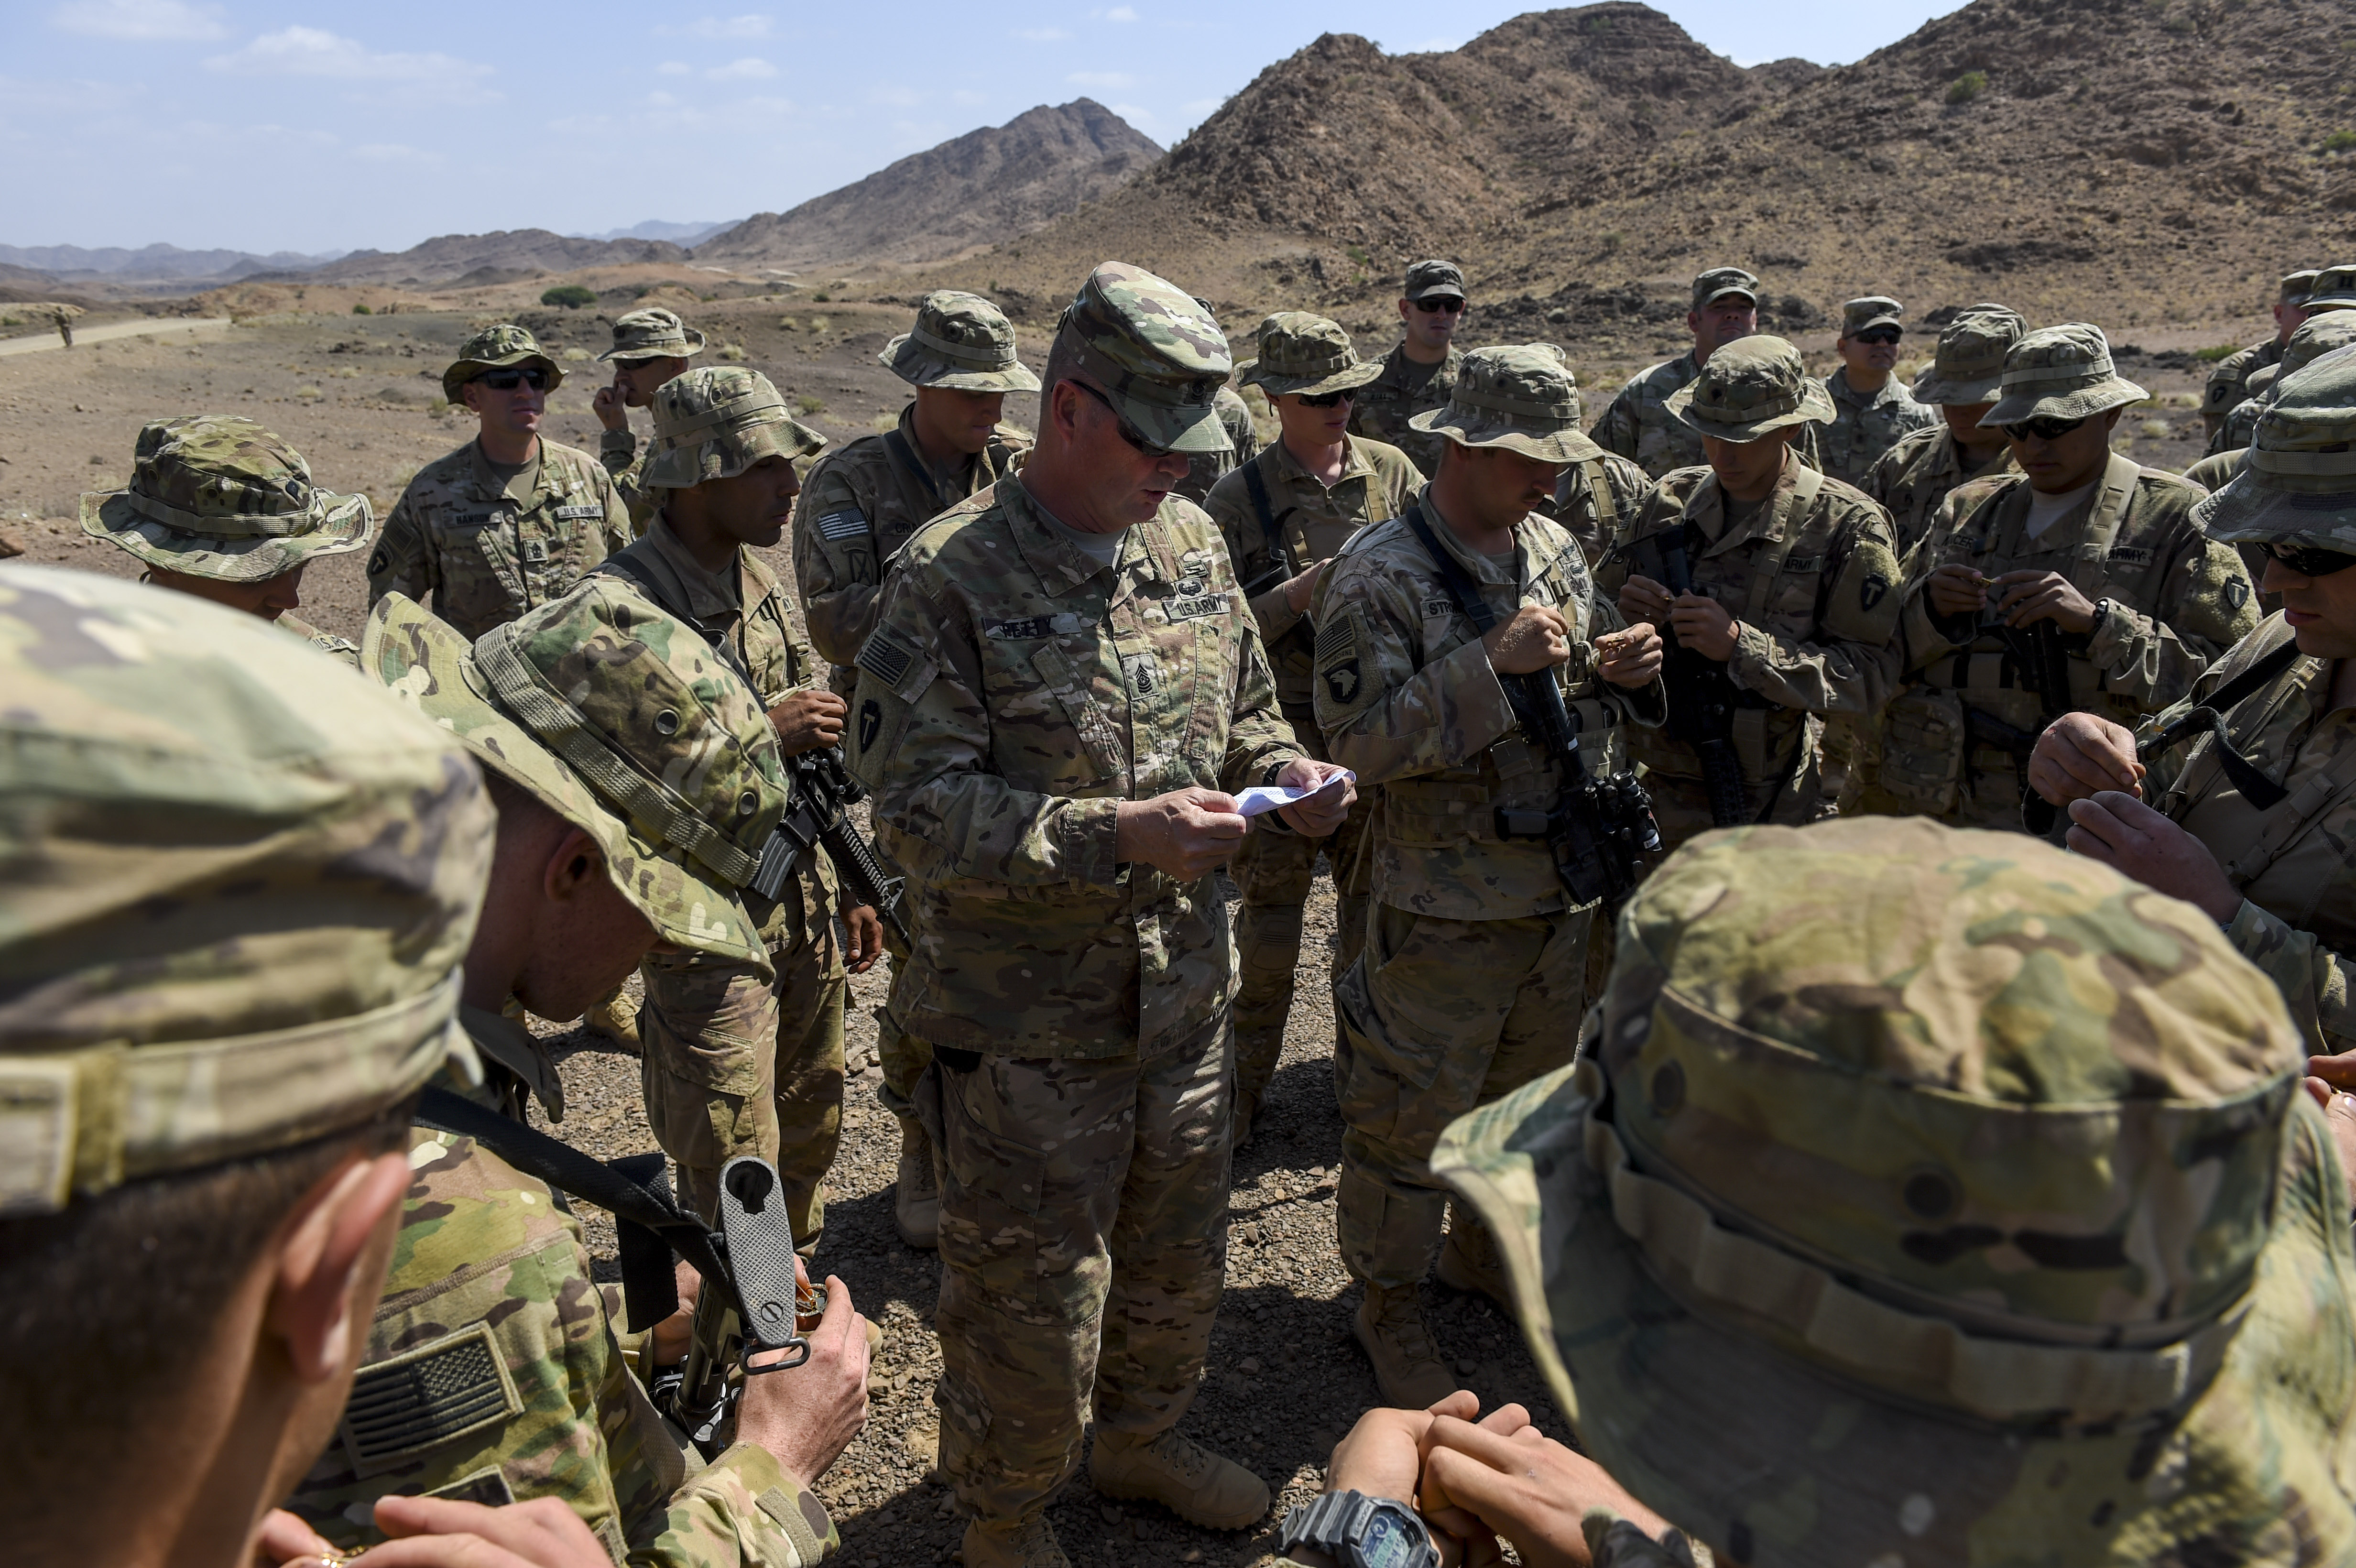 U.S. Army Command Sgt. Maj. Clinton Petty (center), command sergeant major of the 3rd Battalion, 144th Infantry Regiment, Task Force Bayonet, attached to Combined Joint Task Force - Horn of Africa (CJTF-HOA), calls out serial numbers for French Desert Commando Course pins after the course graduation ceremony near Ali Sabieh, Djibouti, Dec. 7, 2017. Each service member, all of whom are assigned to CJTF-HOA, received a pin that was specifically designated to him for graduating the 12-day course. During the course, they learned the fundamentals of desert combat, survival, and troop movements while also bridging language and cultural barriers between French and American troops. (U.S. Air Force photo by Staff Sgt. Timothy Moore)